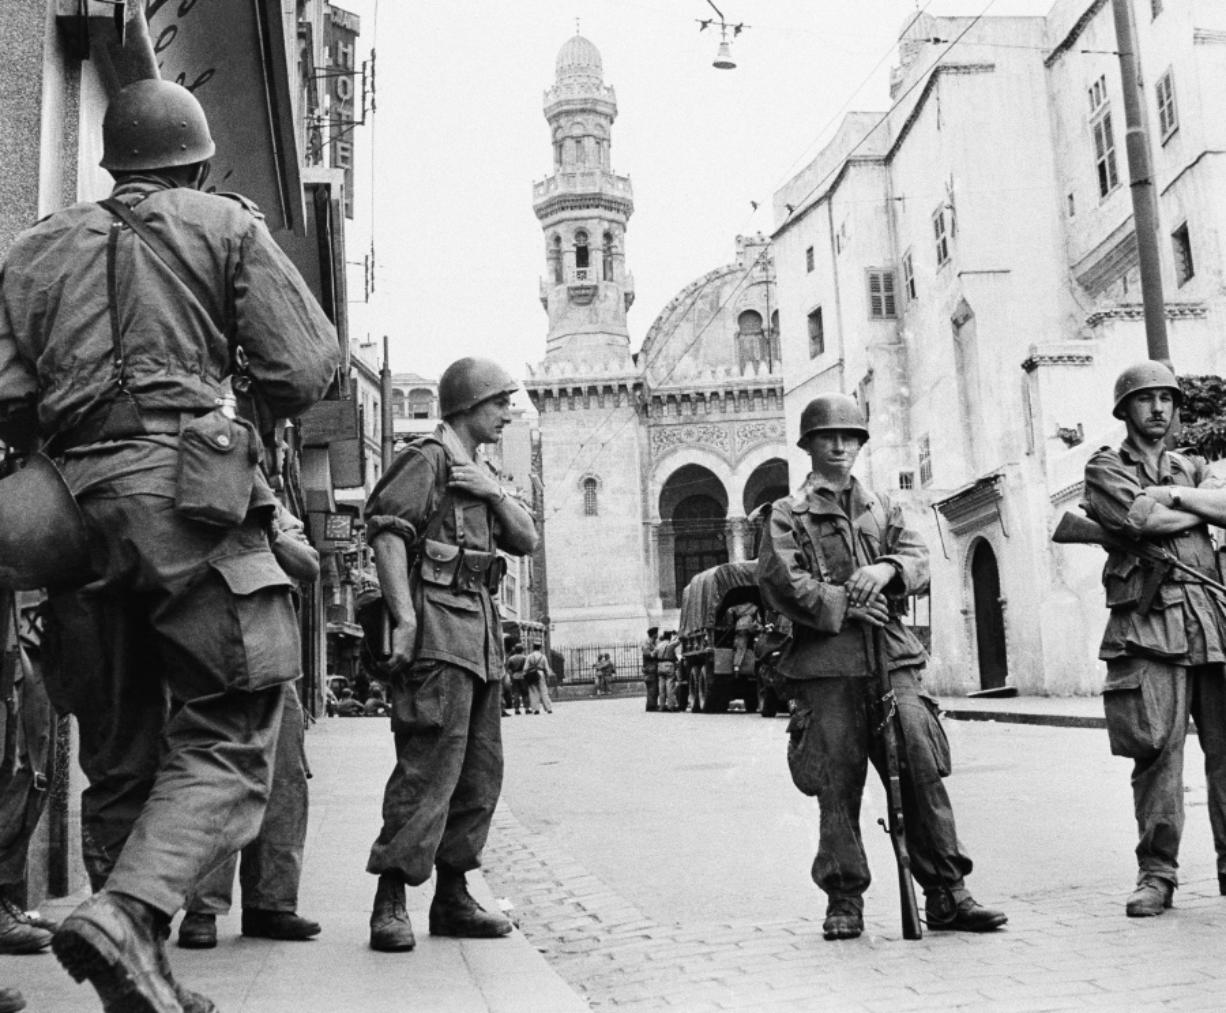 FILE - In this May 27, 1956 file photo, French troops seal off Algiers' notorious casbah, 400-year-old teeming Arab quarter. French President Emmanuel Macron wants to take further steps to reckon with France's colonial-era wrongs in Algeria but is not considering an official apology, his office said.